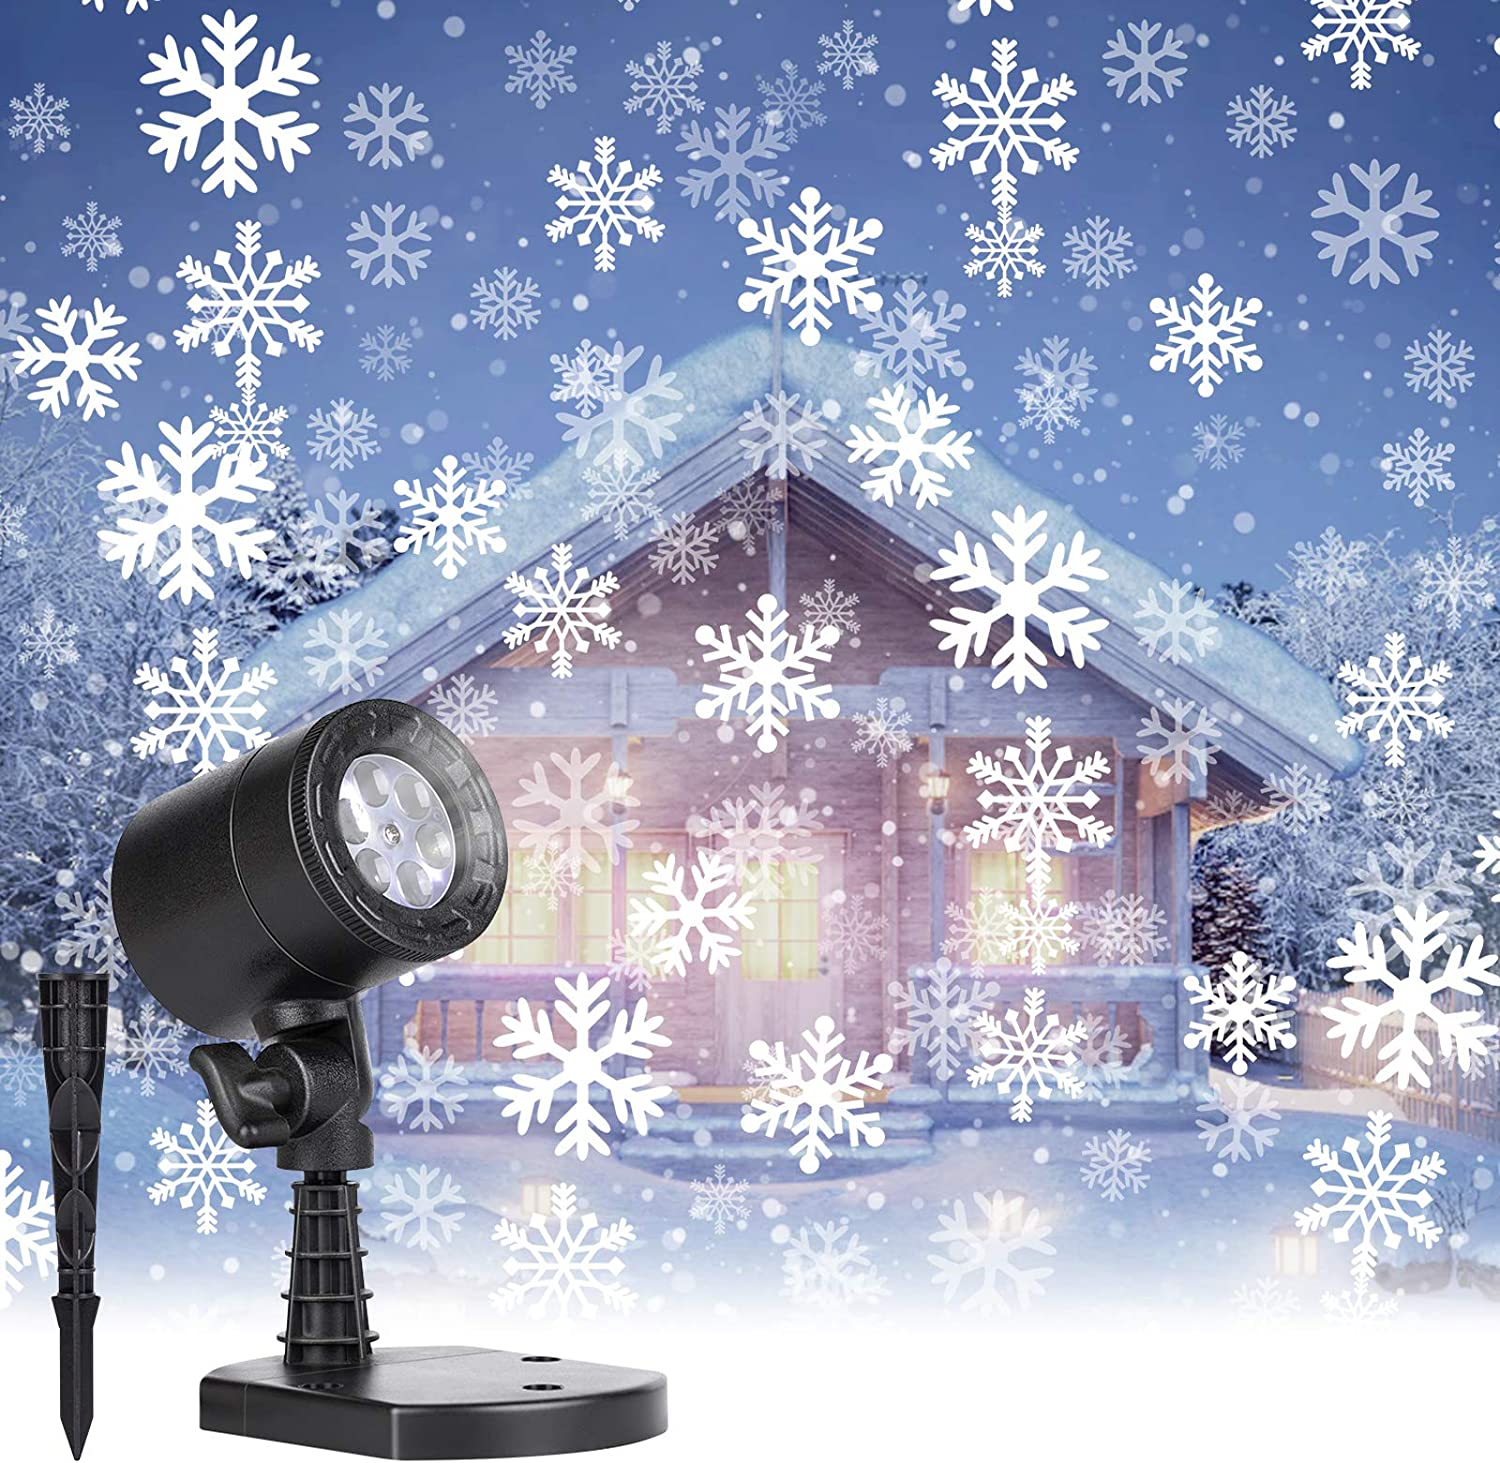 Christmas Projector Lights Outdoor Led Snowflake Projector Lights Waterproof Plug in Moving Effect Wall Mountable for Halloween Christmas Holiday New Year Indoor Home Party Decoration Show